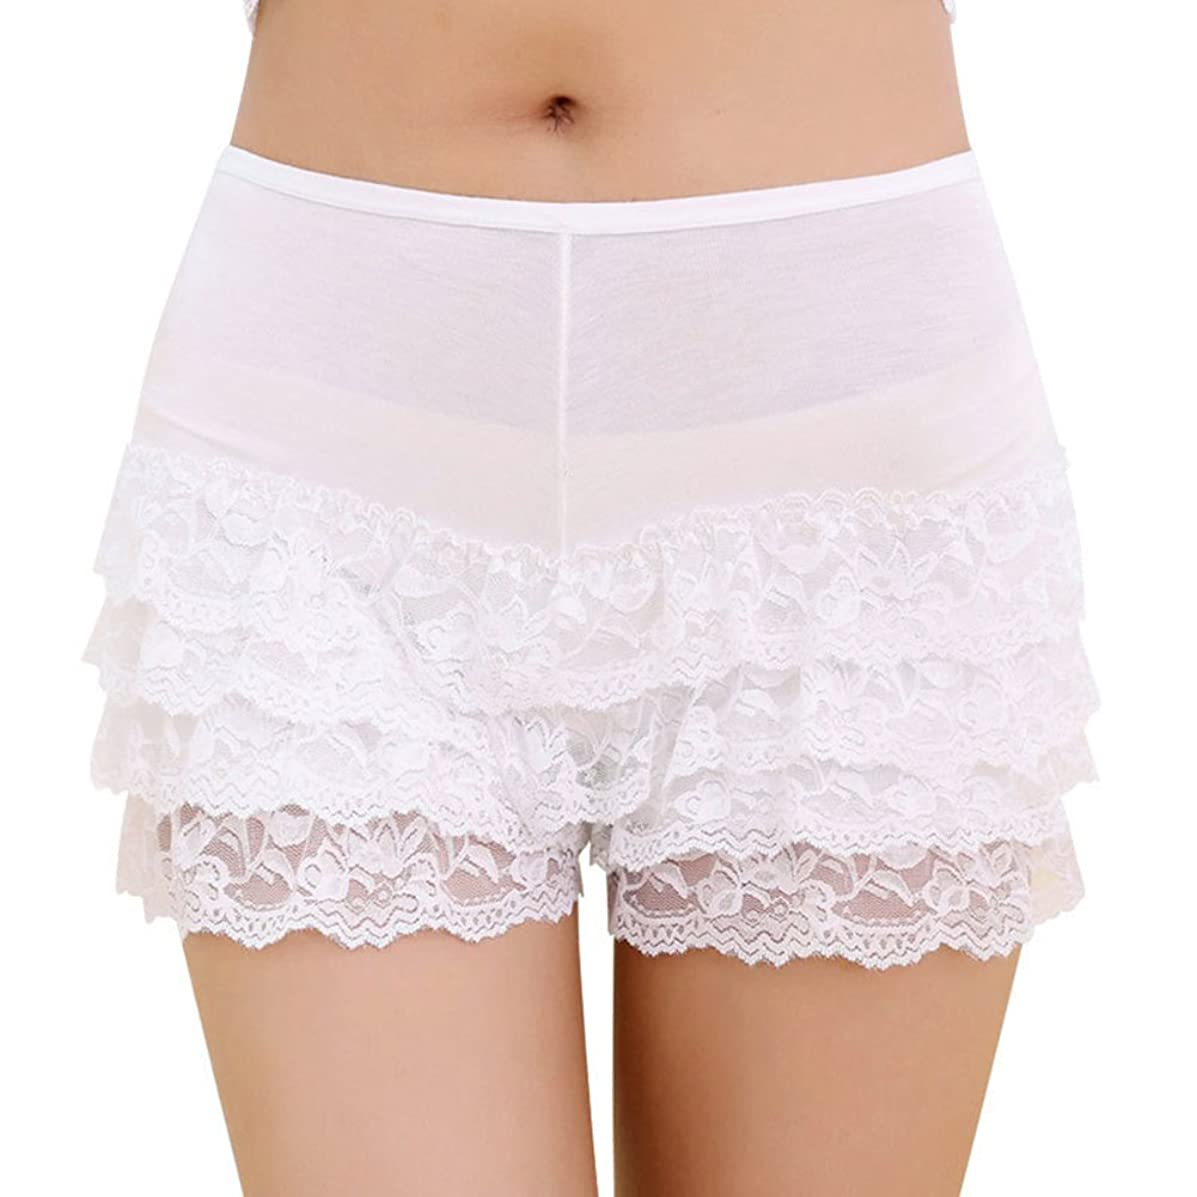 RARITY-US Women Layered Lace Sexy Short Hot Pants Leggings Tights Pettipants Underpants Underwear